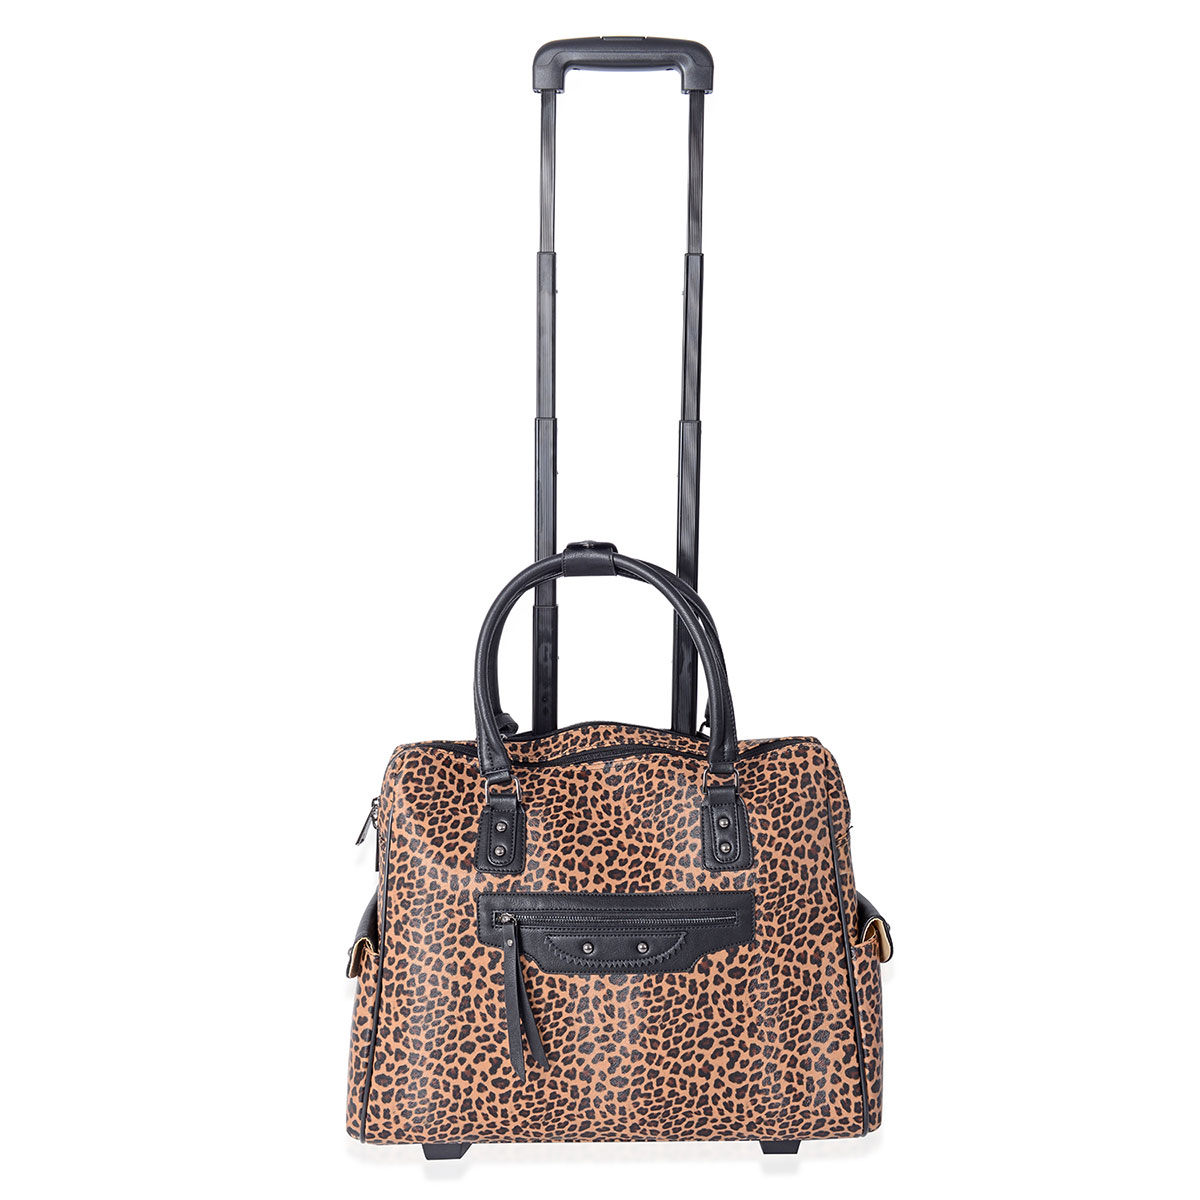 698c13b5fa9f MEGA CLEARANCE Brown, Black Leopard Pattern Vegan Leather Rolling Tote  Carry-on Luggage (19x6x15 in)